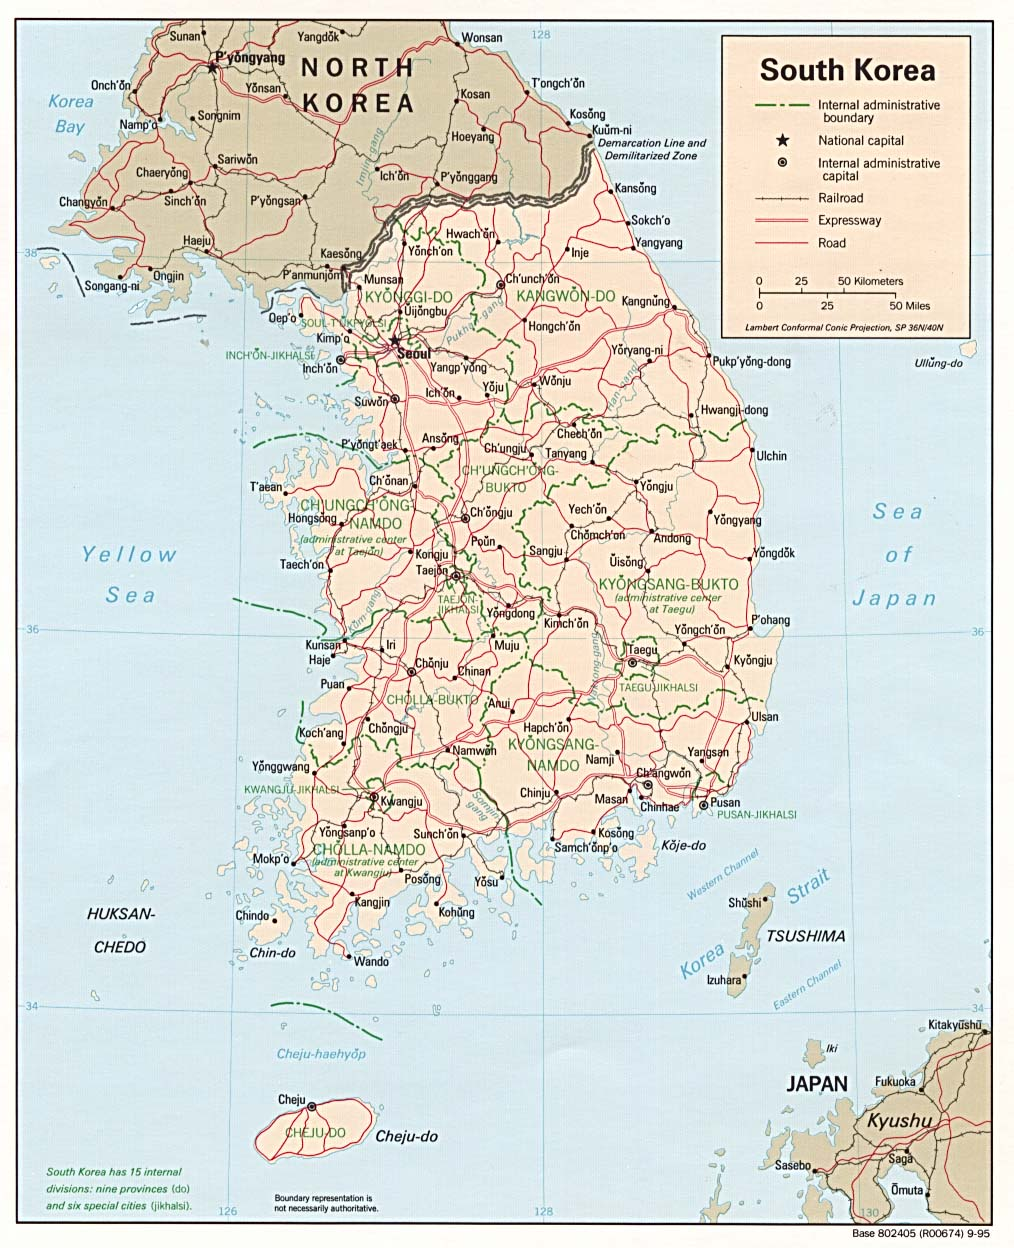 Wps port of busan satellite map country list korea south gumiabroncs Choice Image